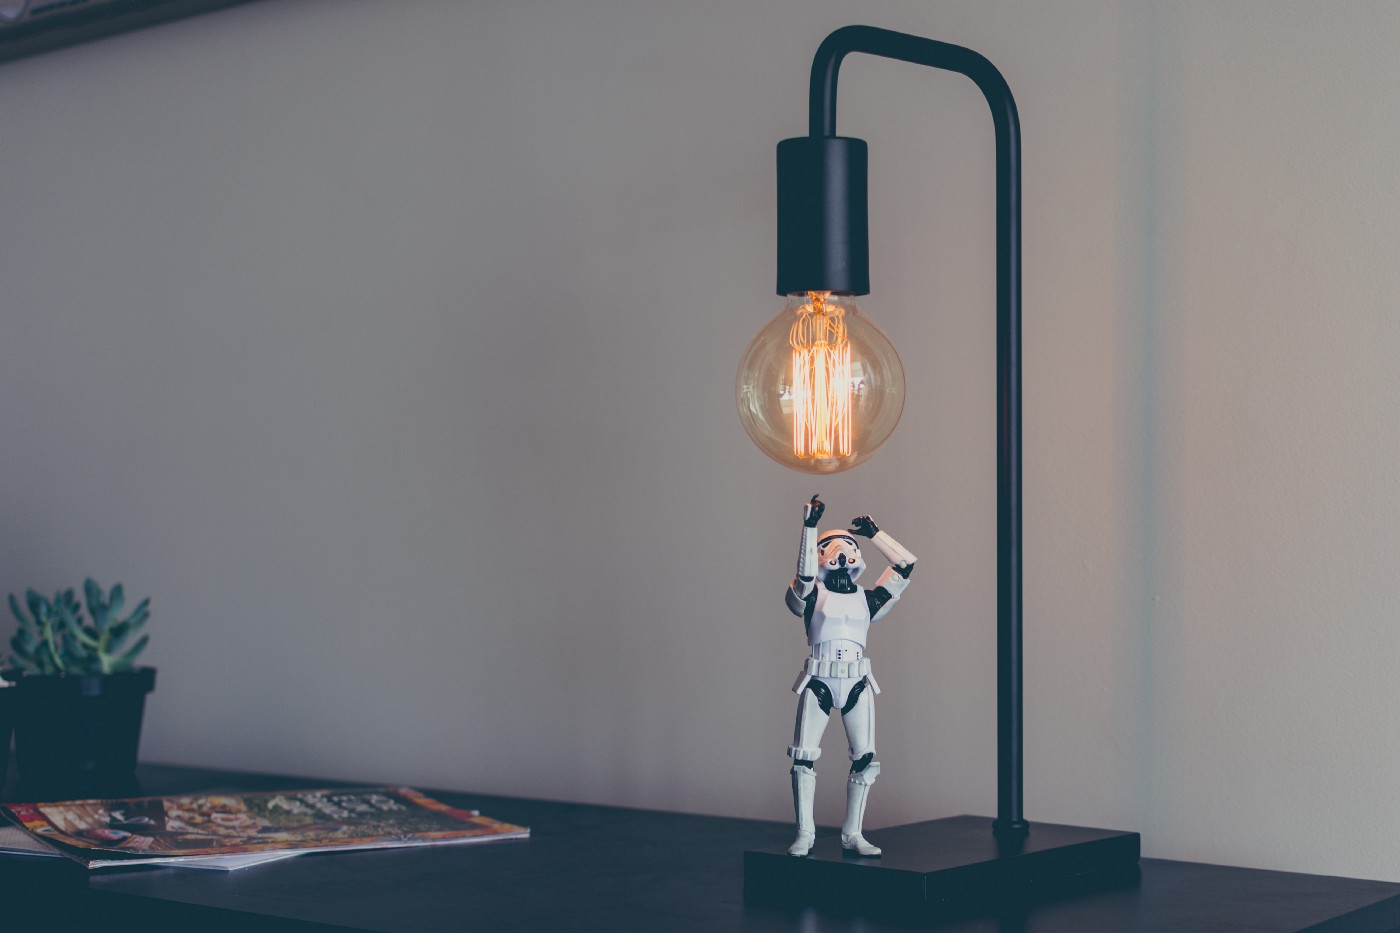 A small storm trooper toy looking up at a light bulb